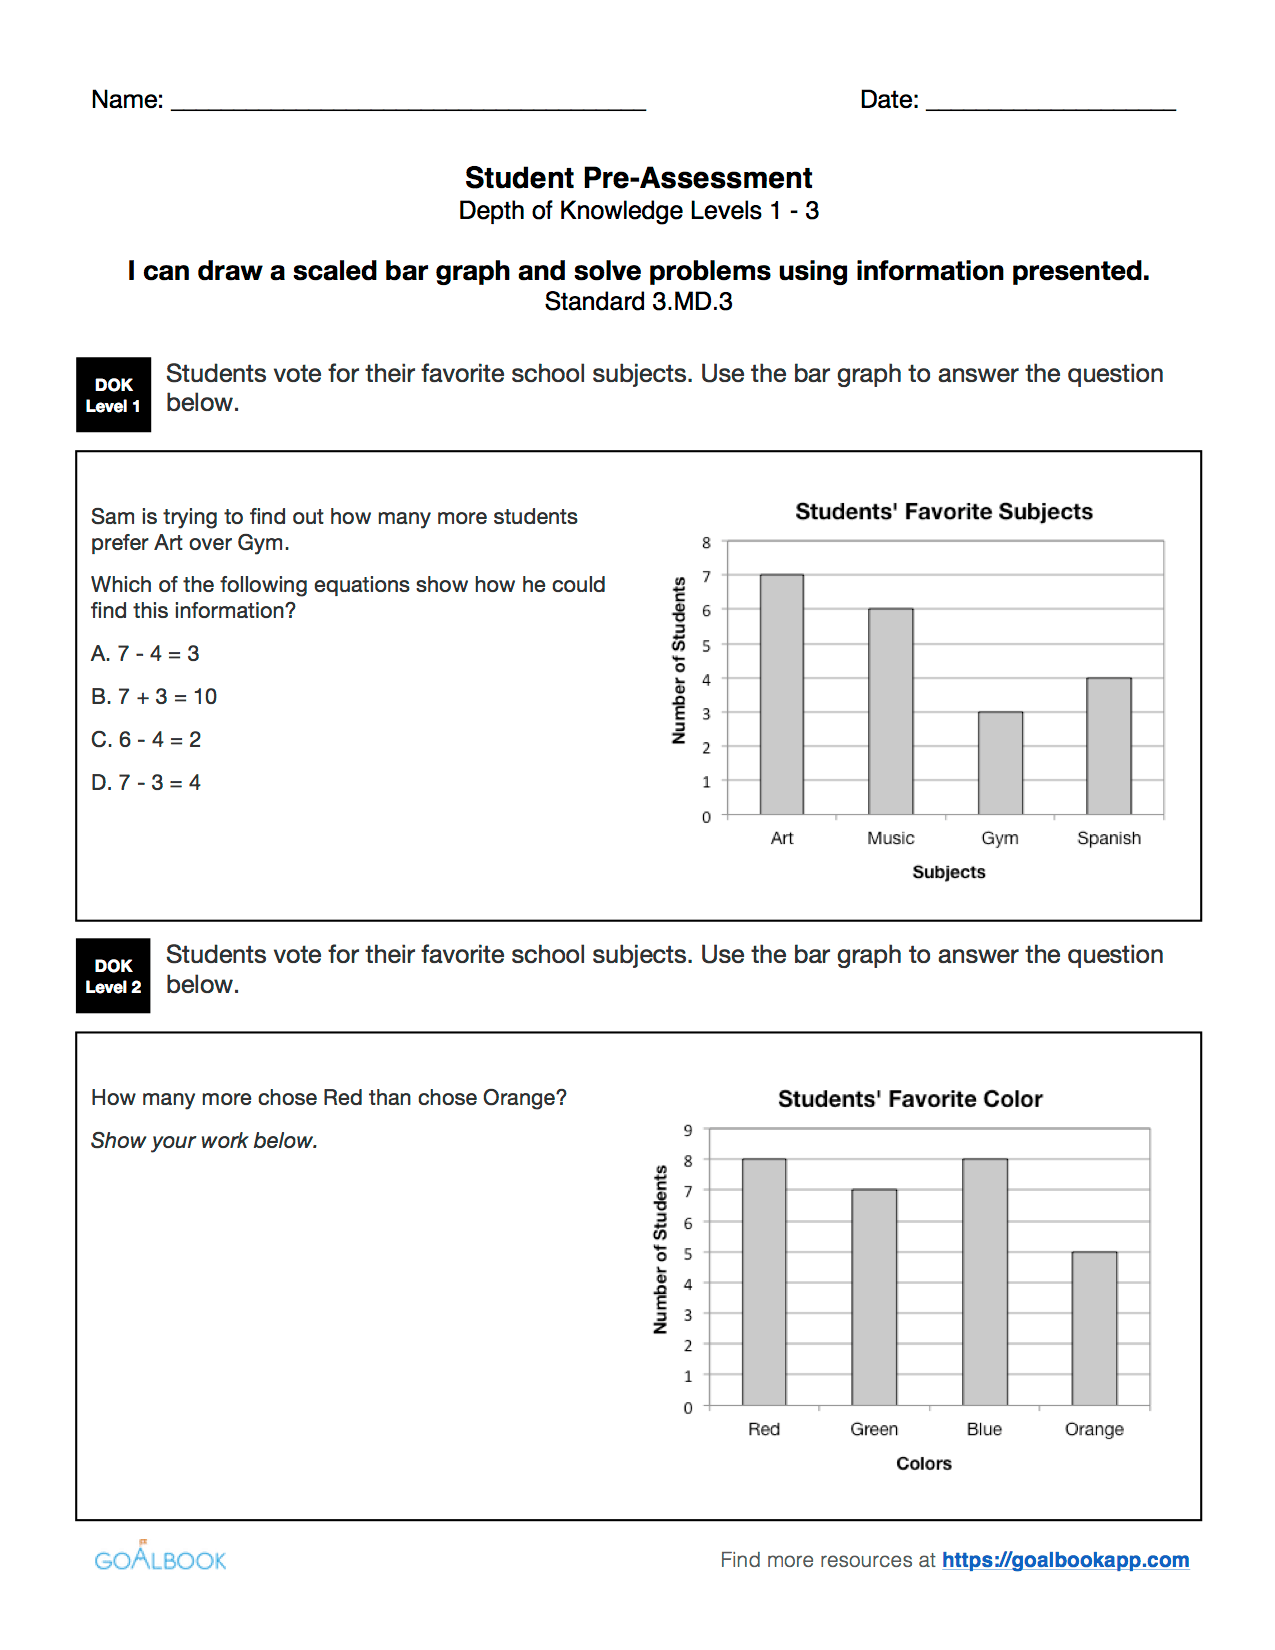 3 Md 3 Draw Bar Graphs And Solve Problems